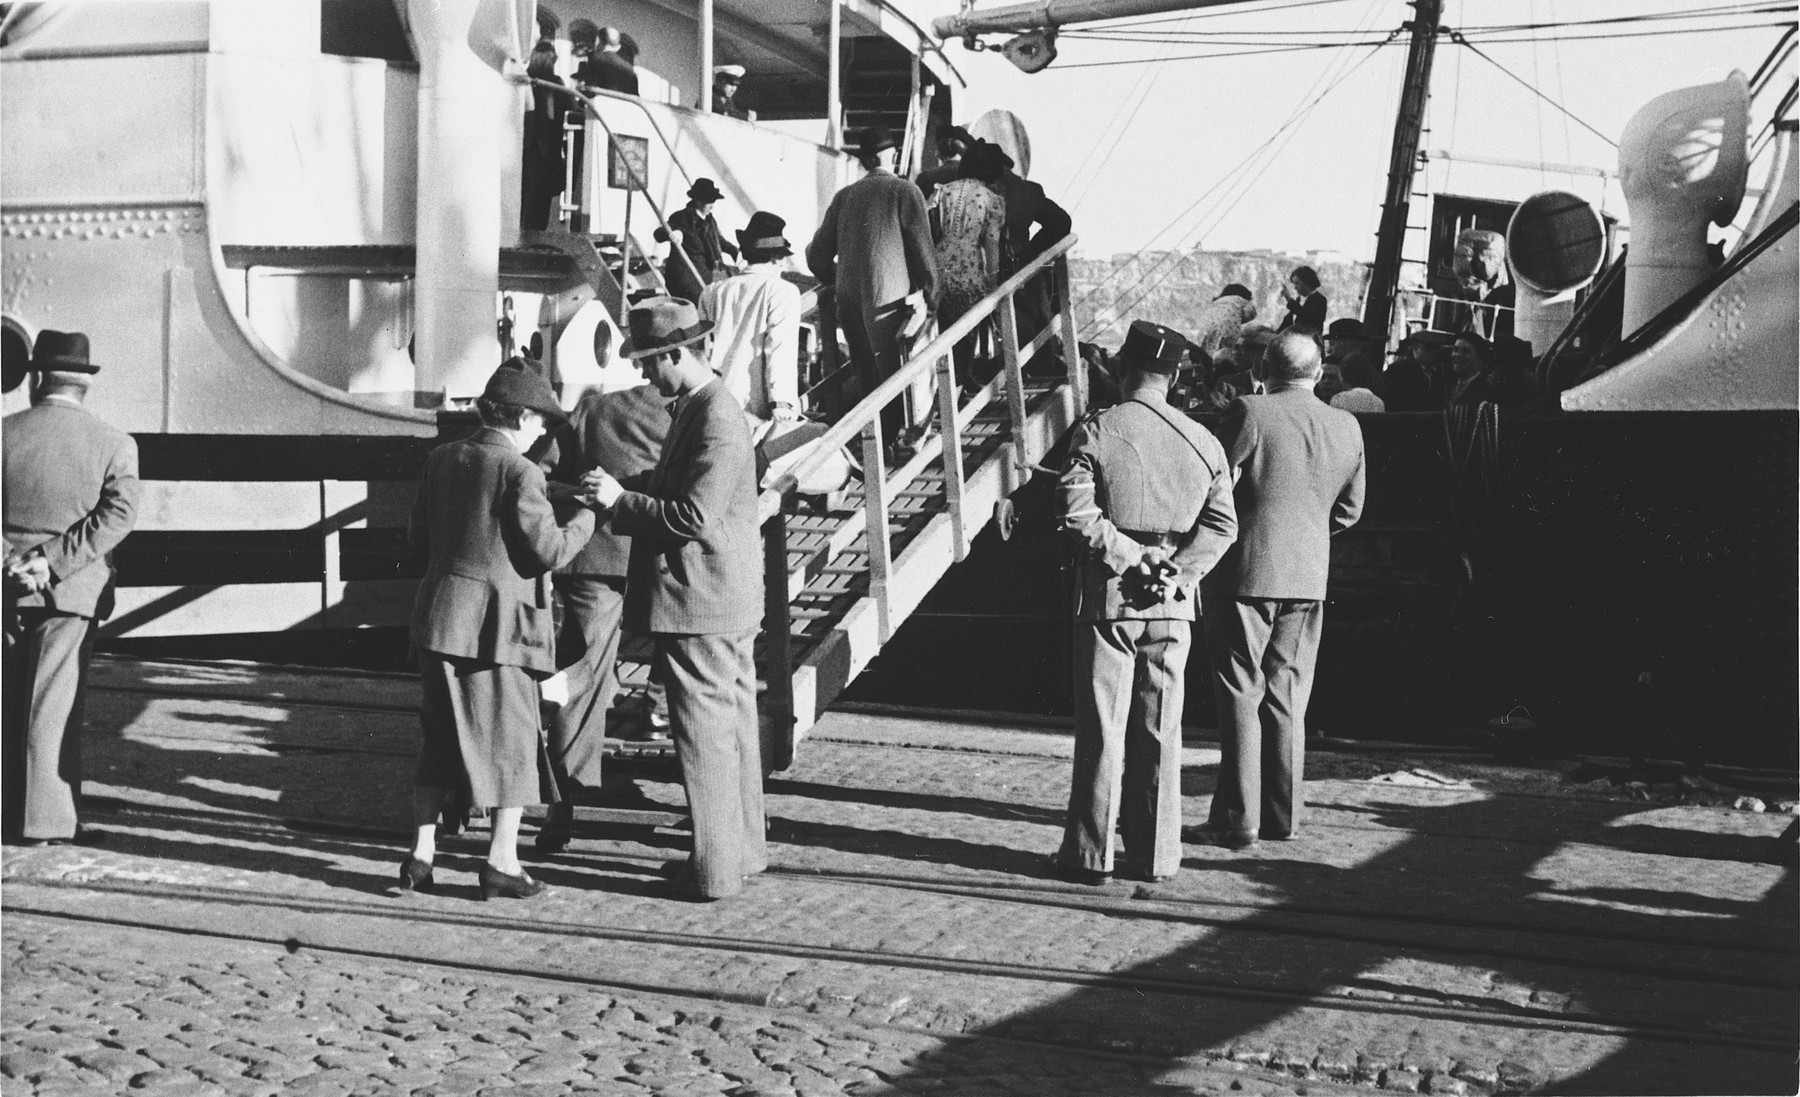 Jewish refugees board the SS Mouzinho in the port of Lisbon.